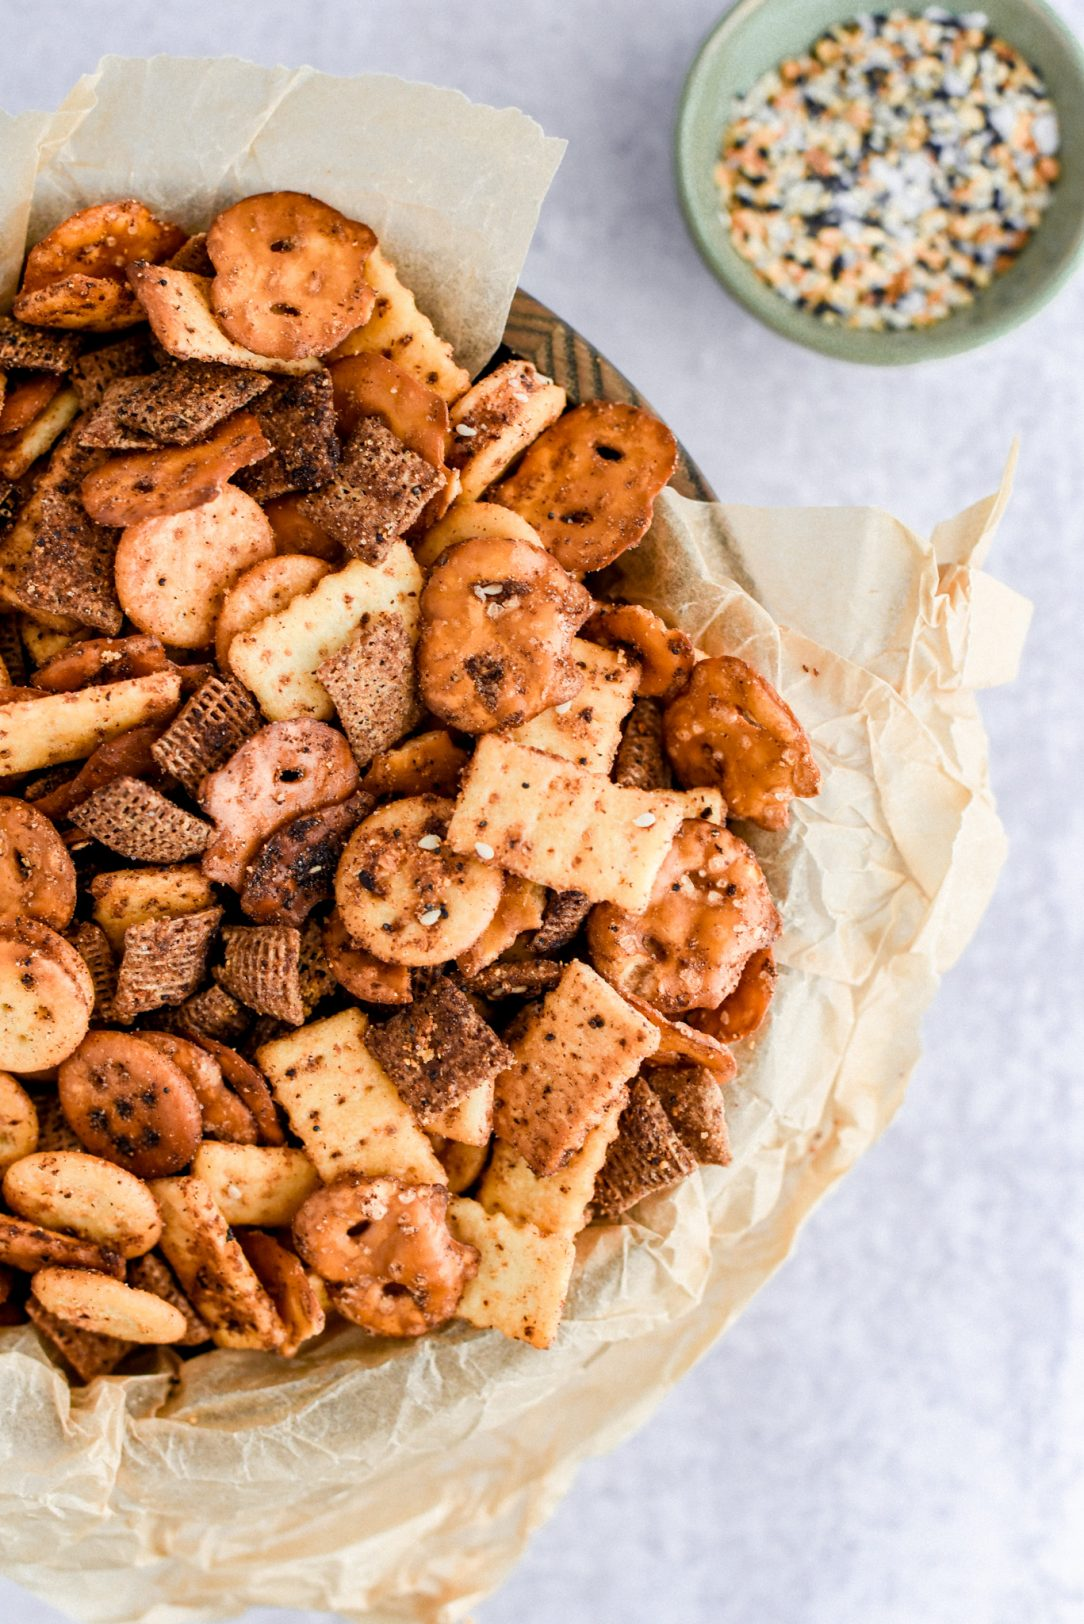 close up of snack mix in serving bowl